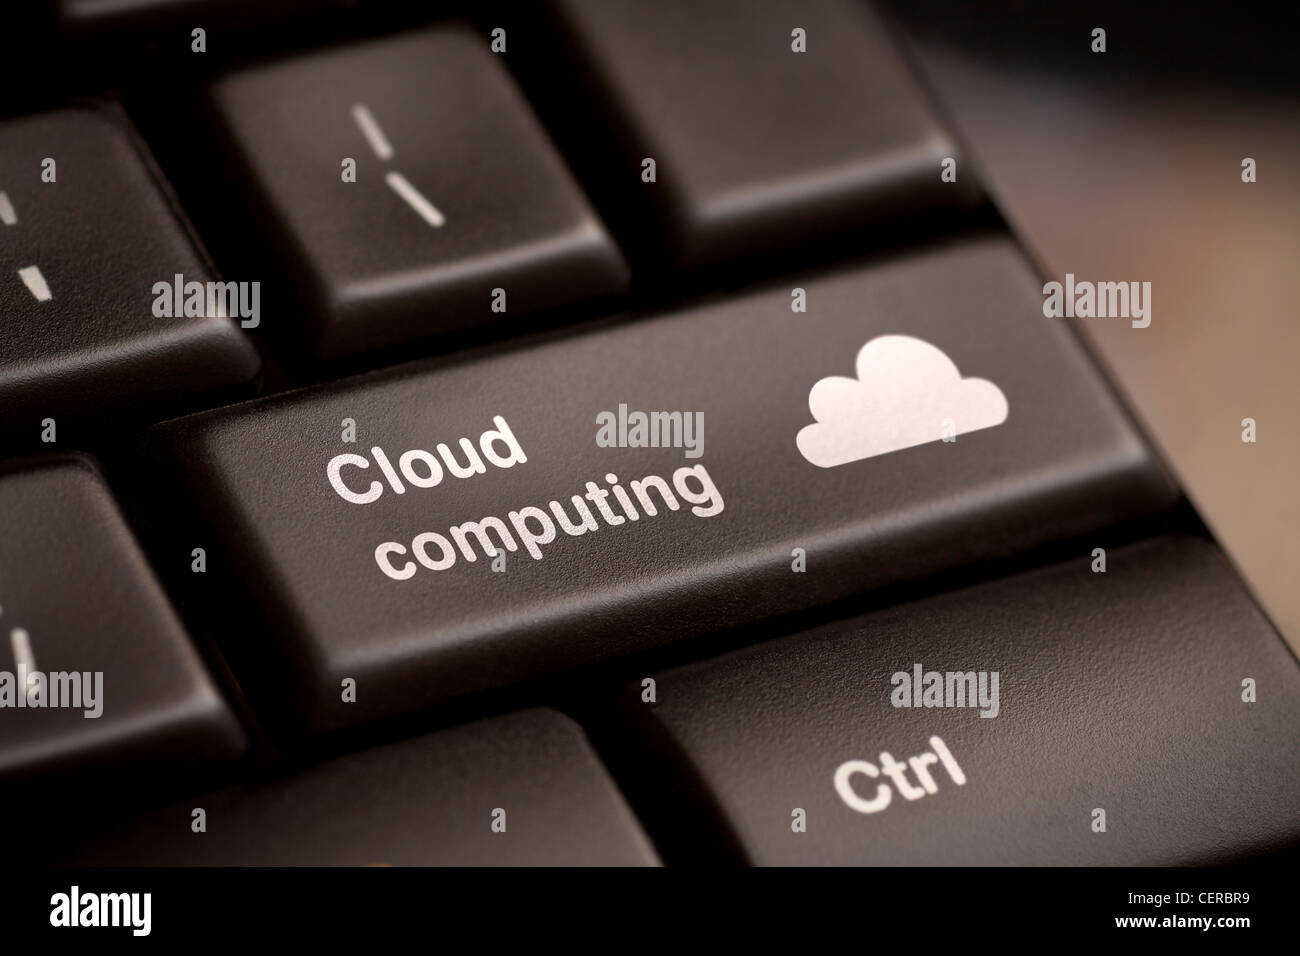 Cloud computing concept showing cloud icon on computer key. - Stock Image